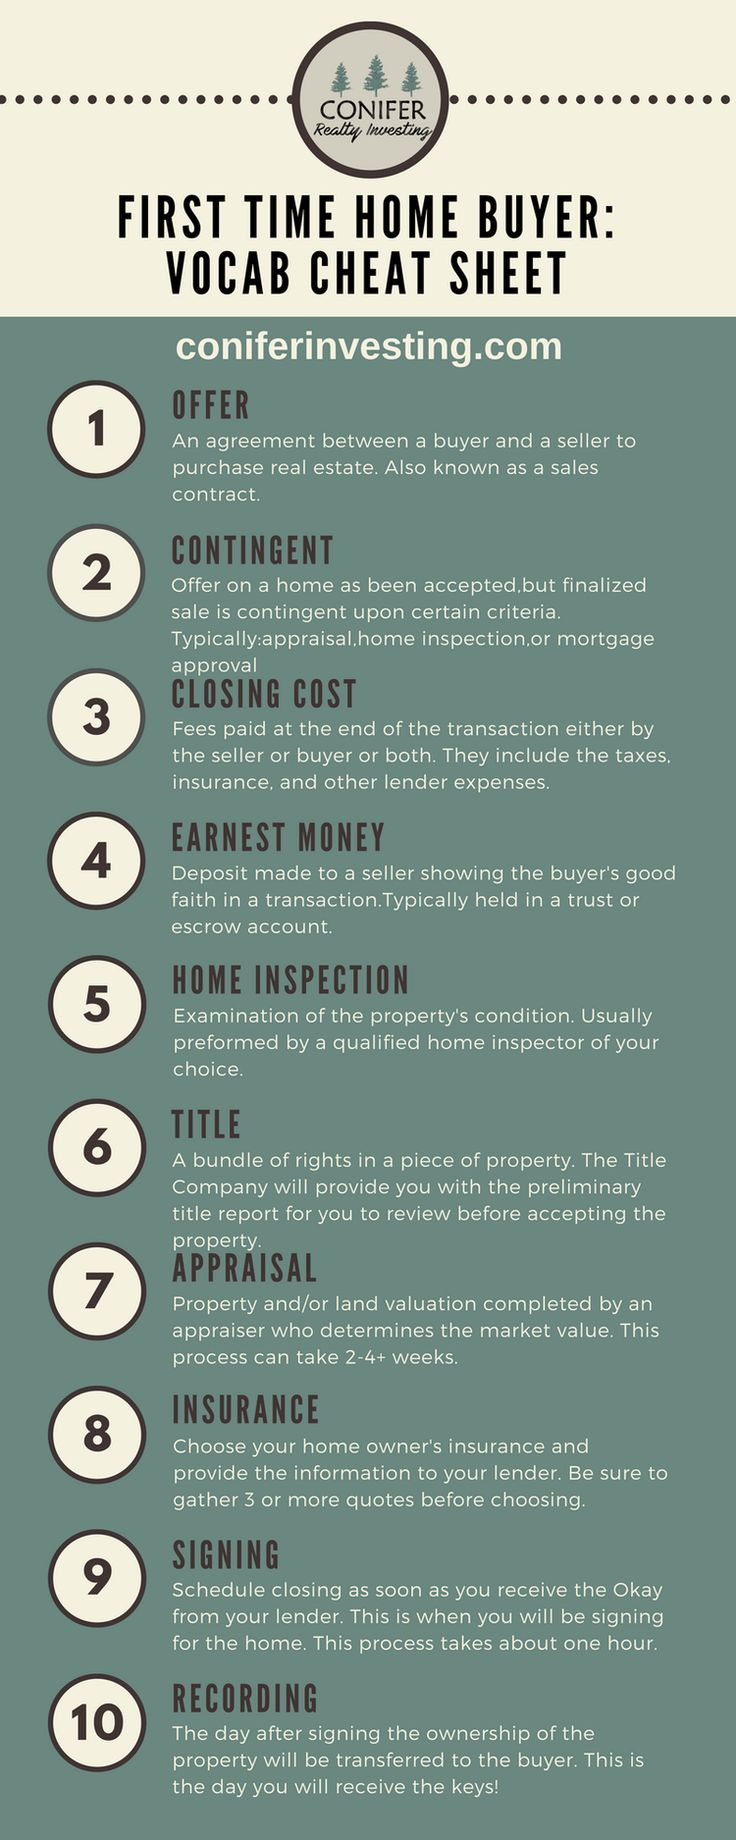 Home Buying Cheat Sheet - Conifer Realty Investing. Brought to you by Marcie Hahn-Knoff  REALTOR® | Broker, PureWest Christie's International Real Estate homeinbozeman.com